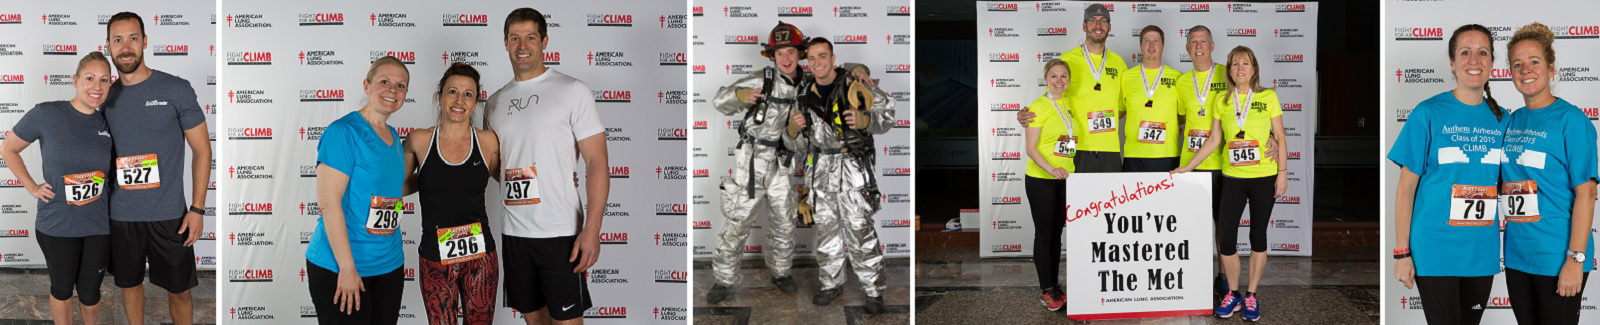 Fight For Air Climb - St. Louis, MO. Step Up to the Challenge!